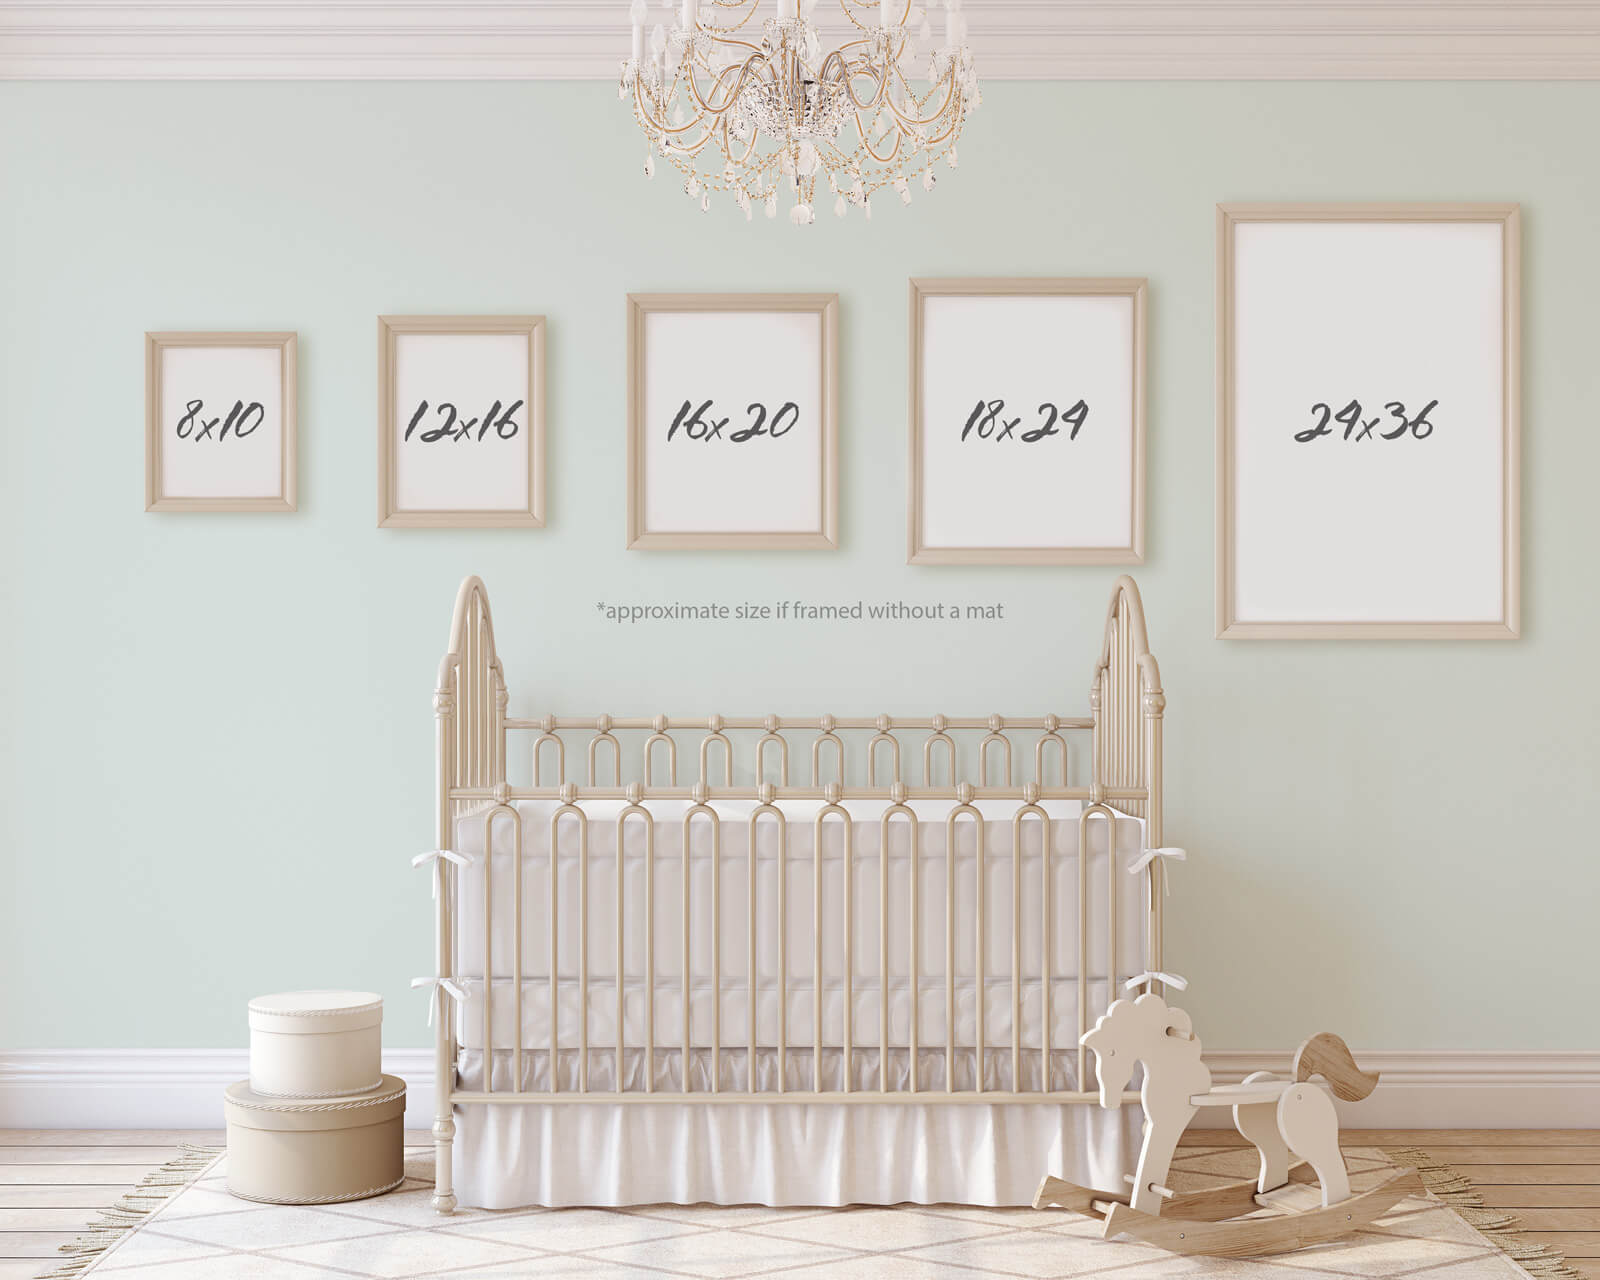 Print Sizes for Delicious Design House Nursery Prints Size Guide